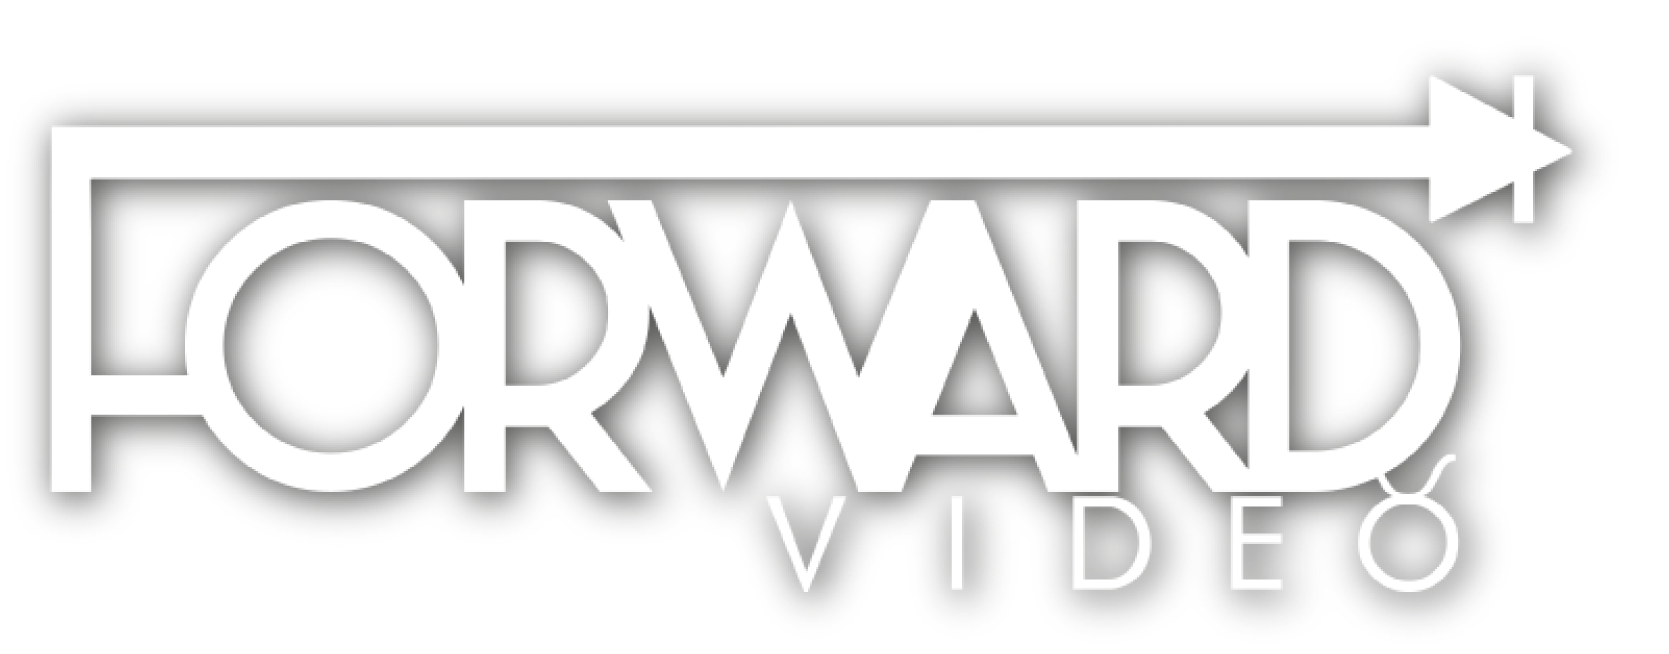 Forward Video